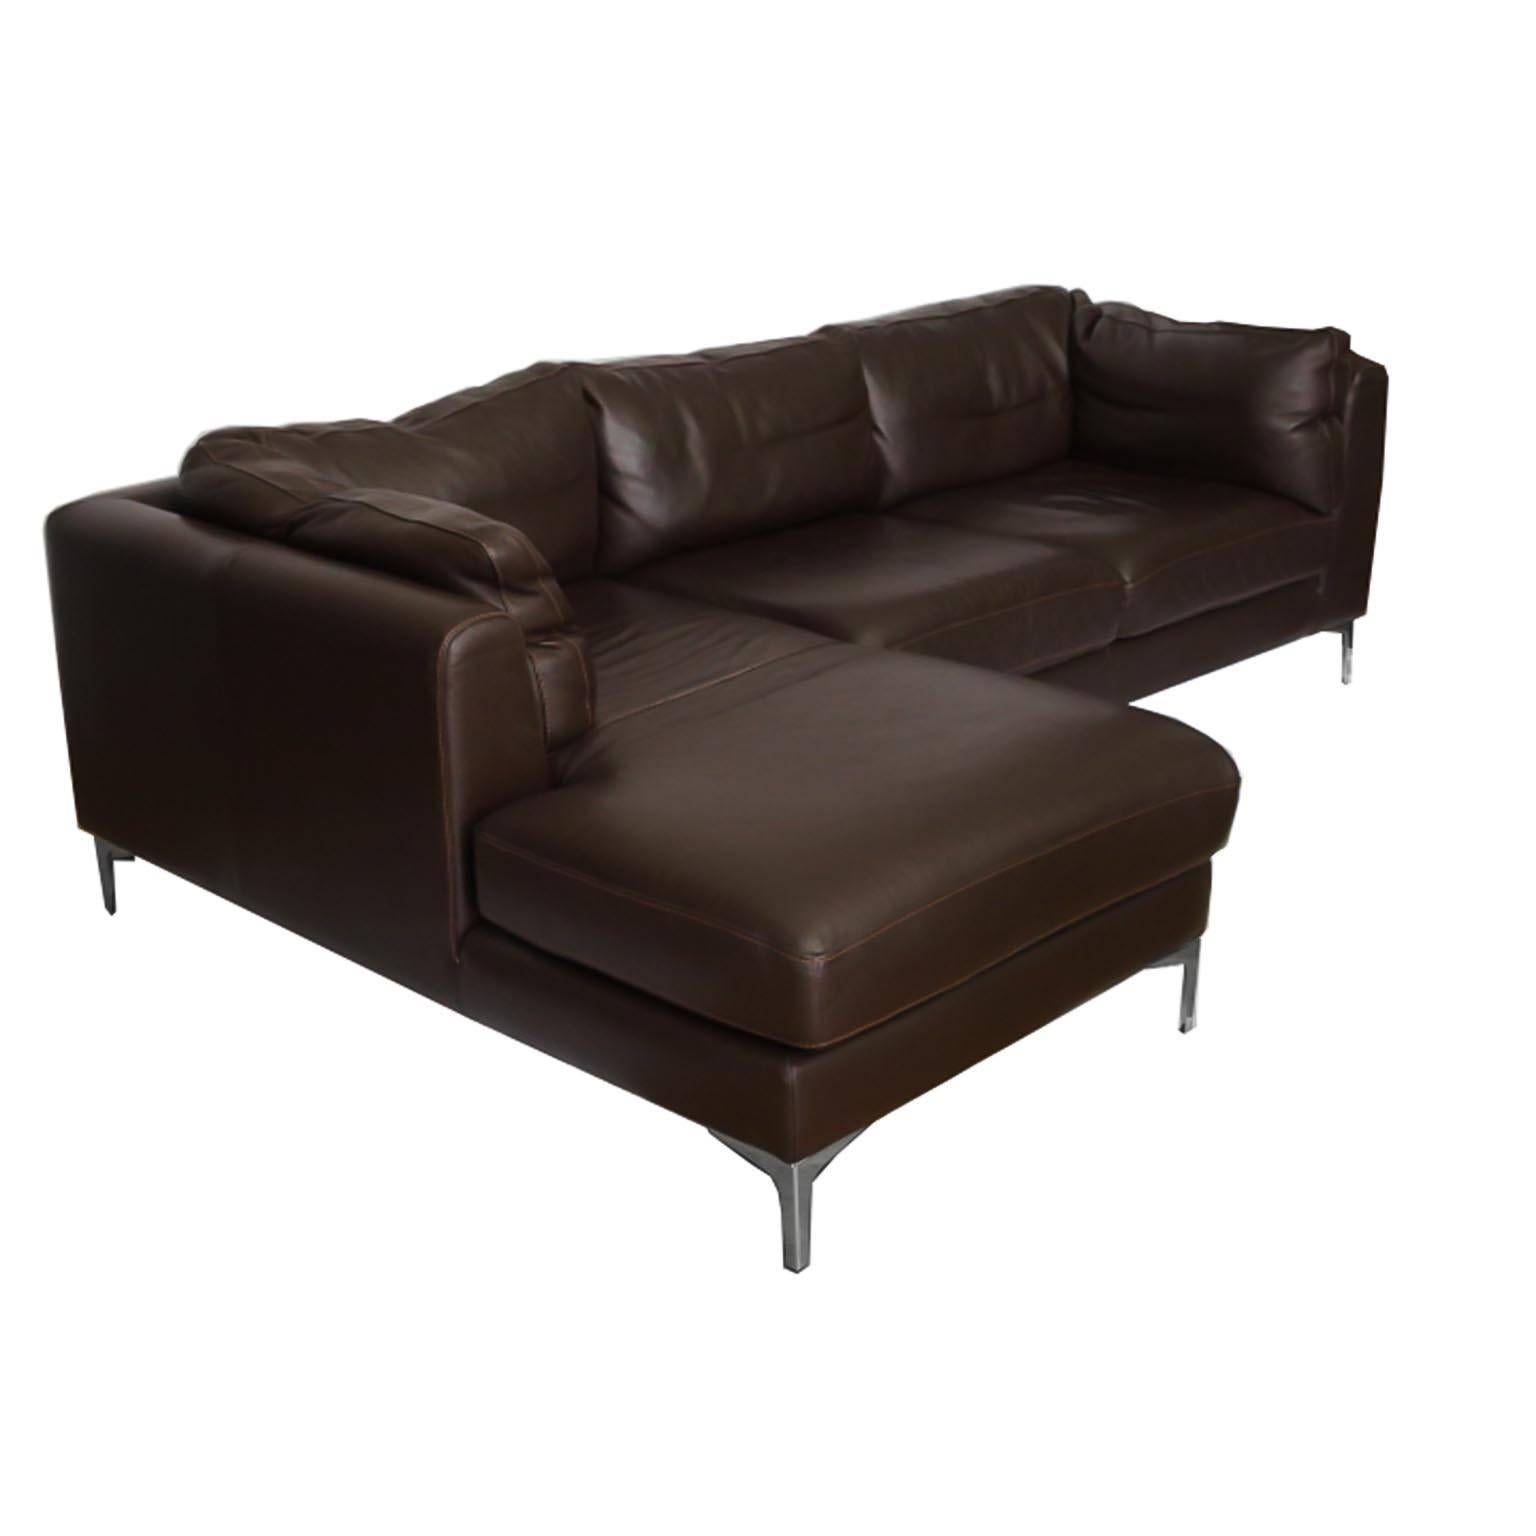 Nicoletti for Design Within Reach Brown Leather Sectional Made in